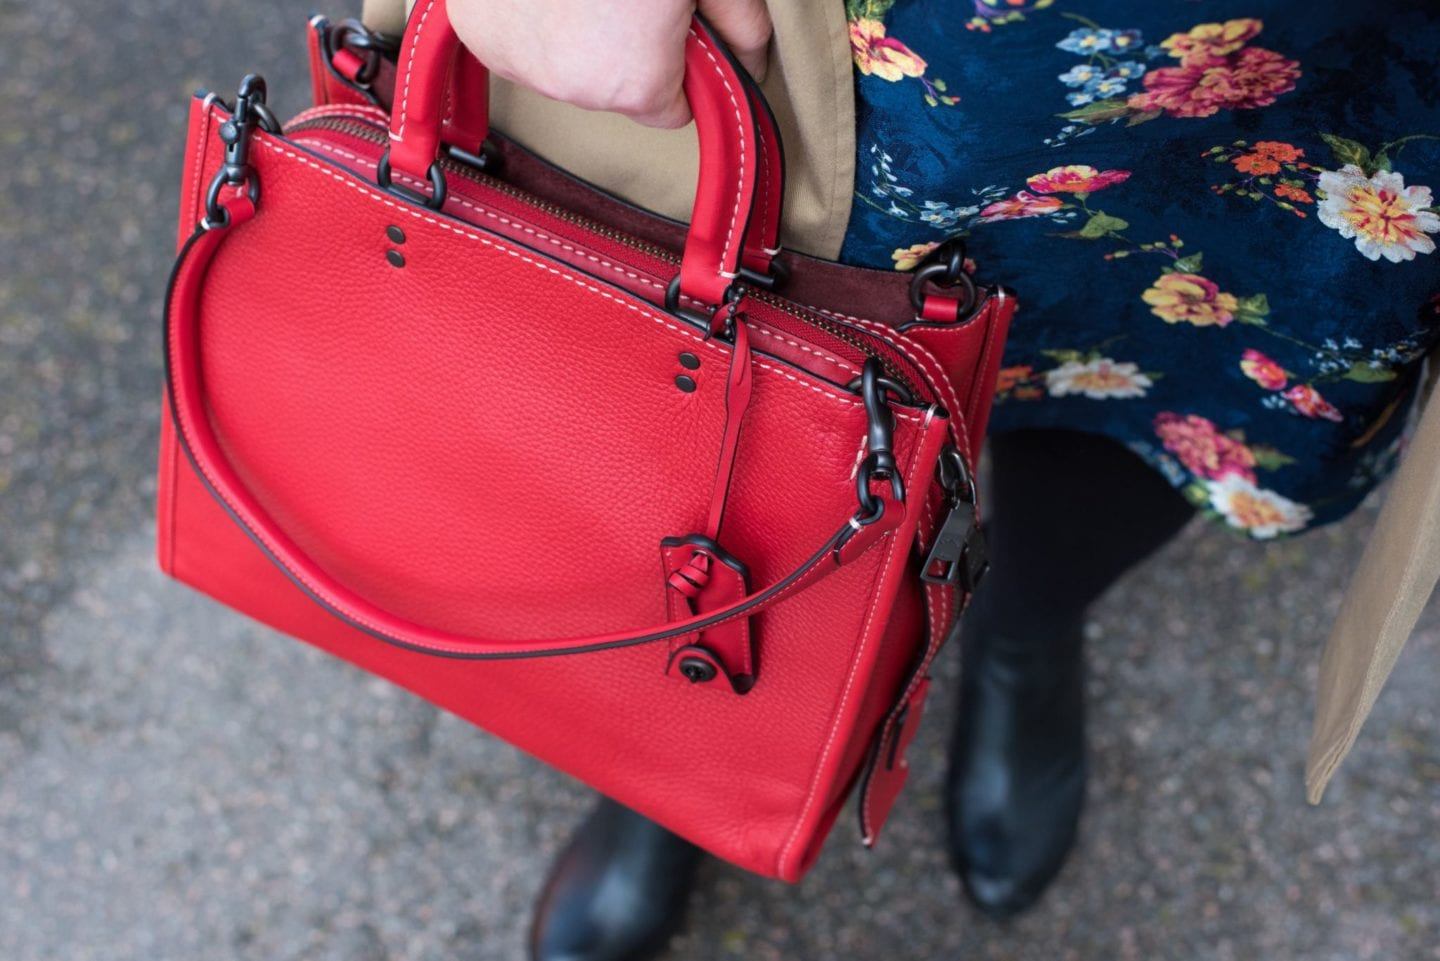 coach rogue handbag red leather tote bag detal shot